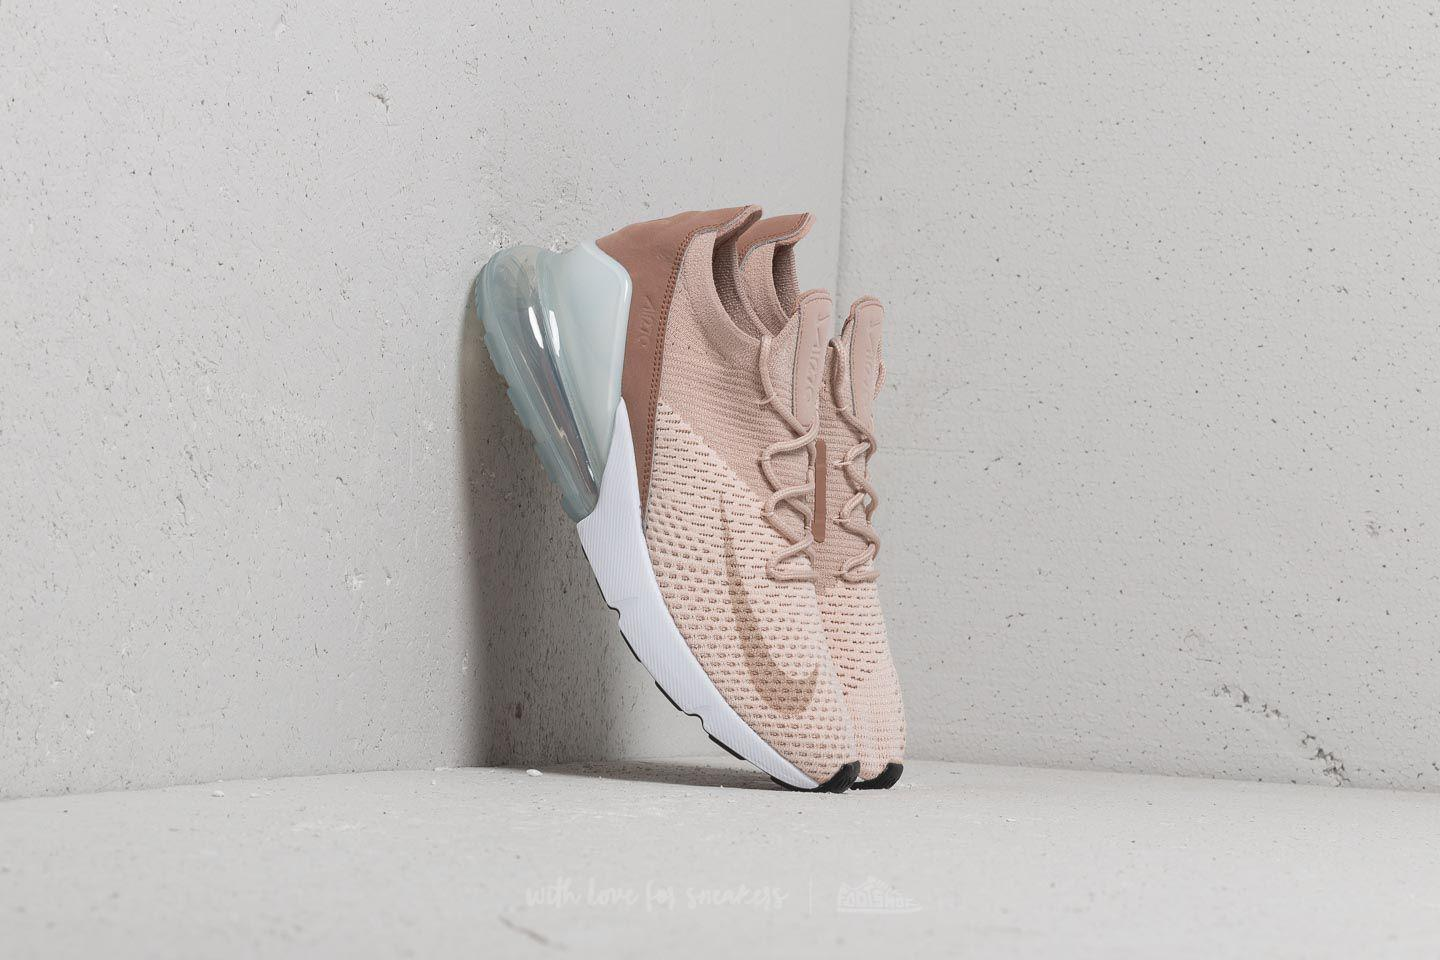 Wmns Air Max 270 Flyknit Guava Ice/ Particle Beige